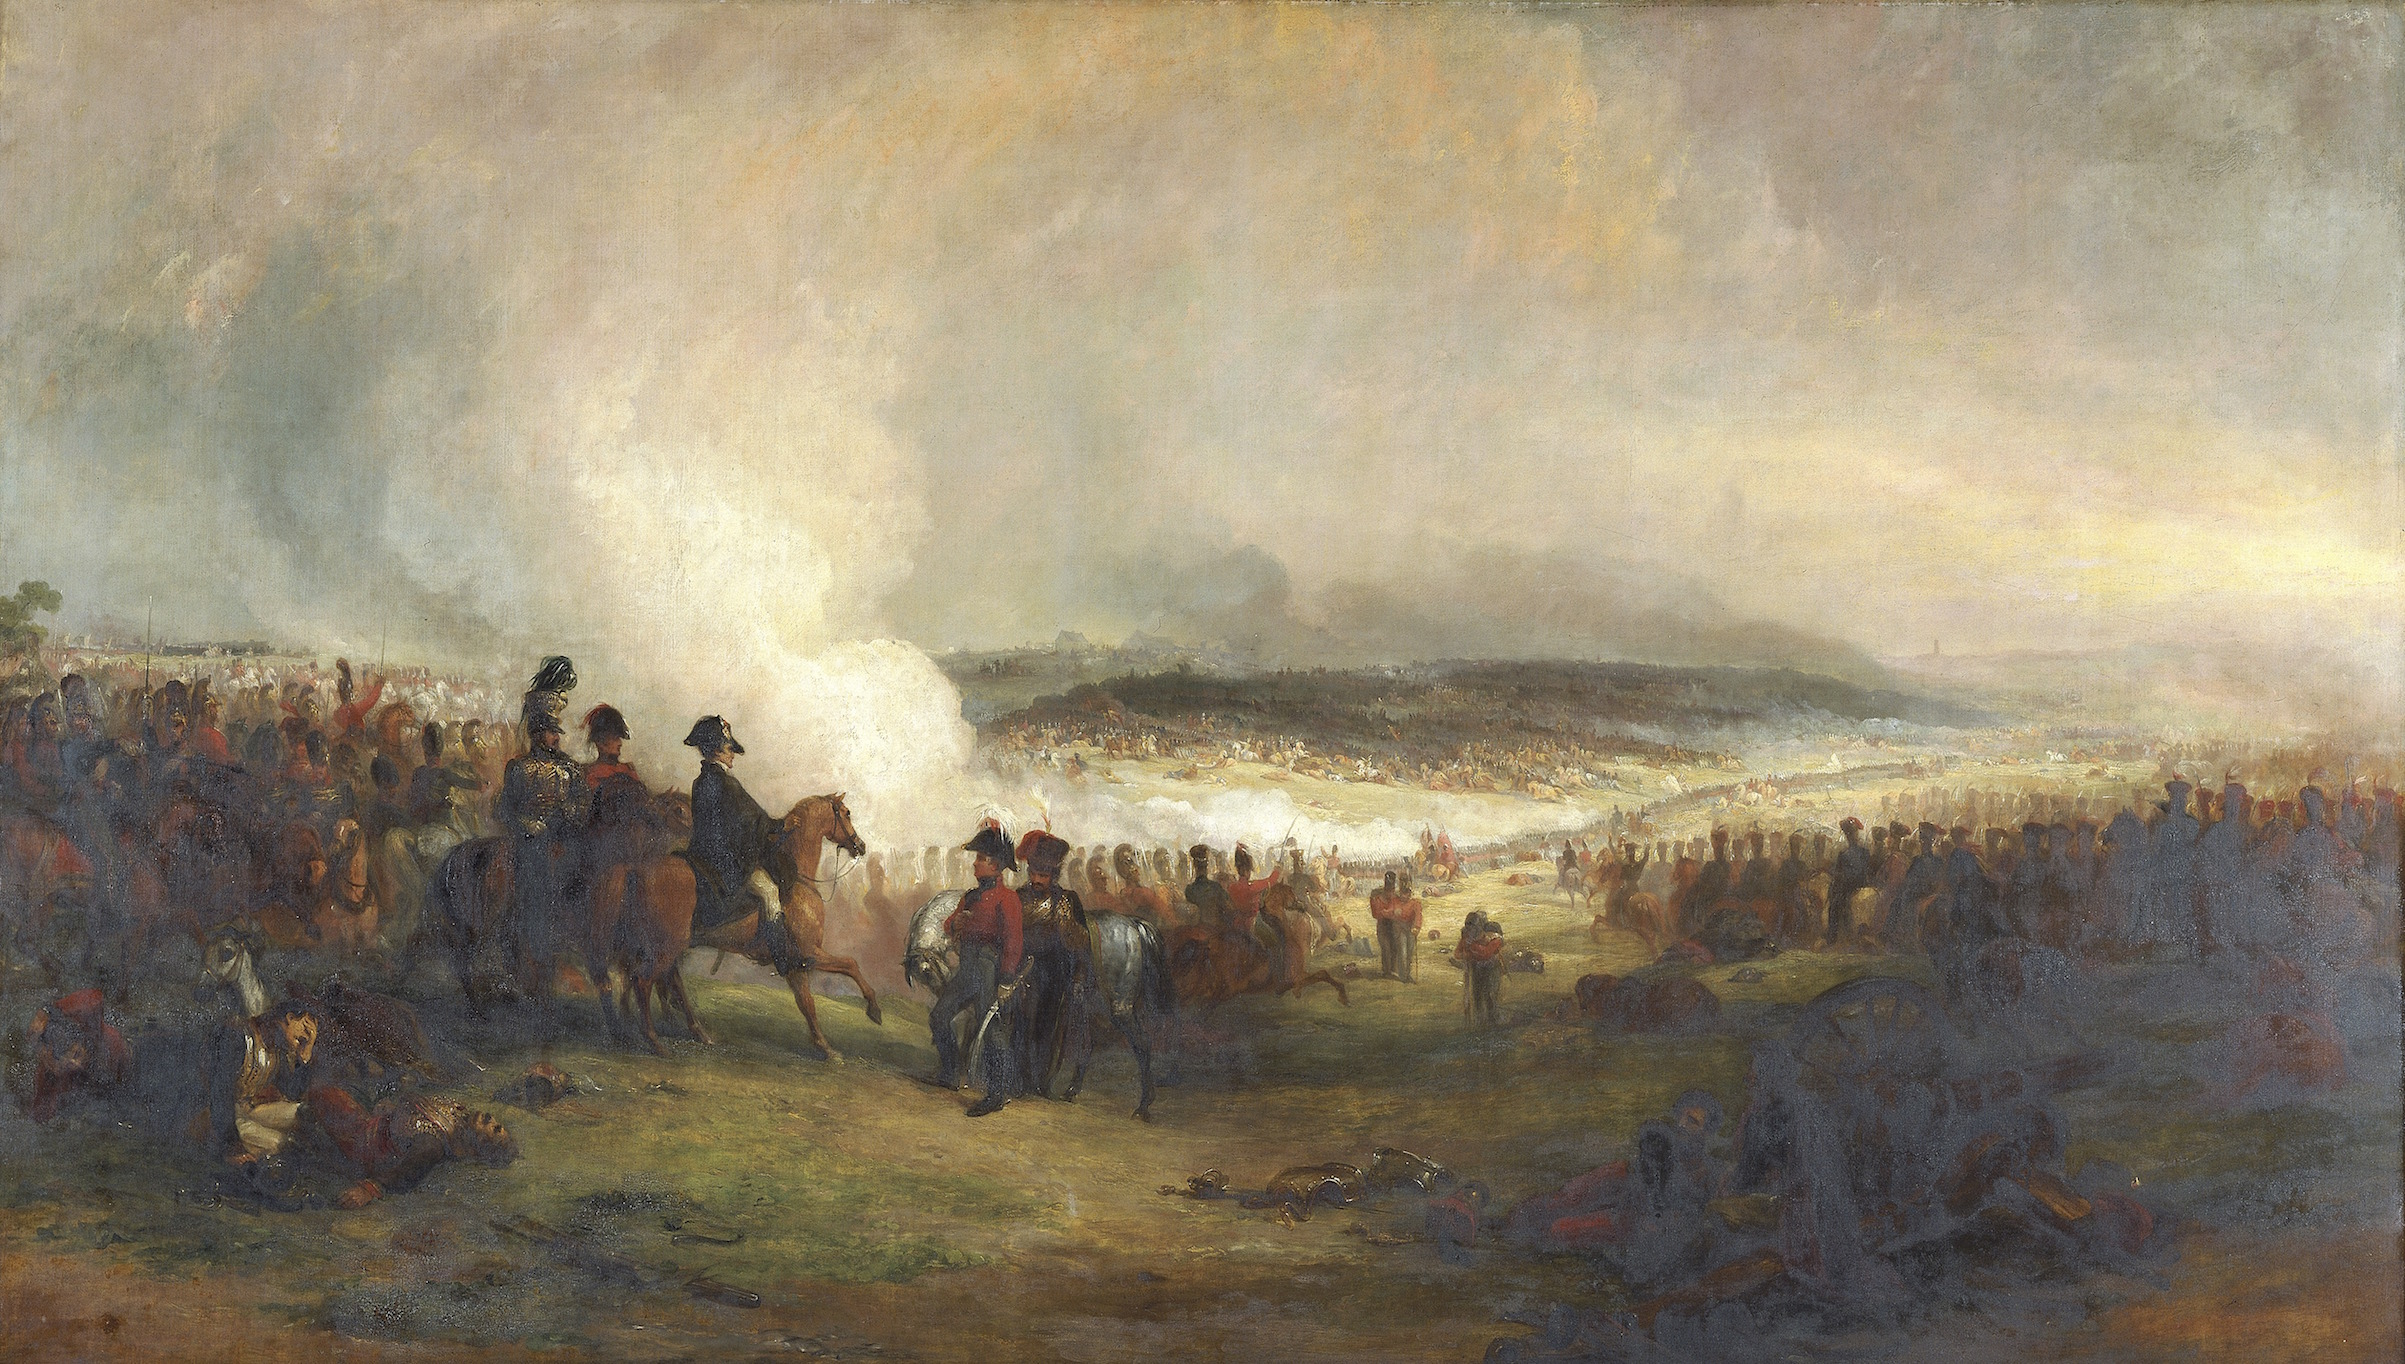 The battle of Waterloo', 1813-1869. Artist: George Jones.